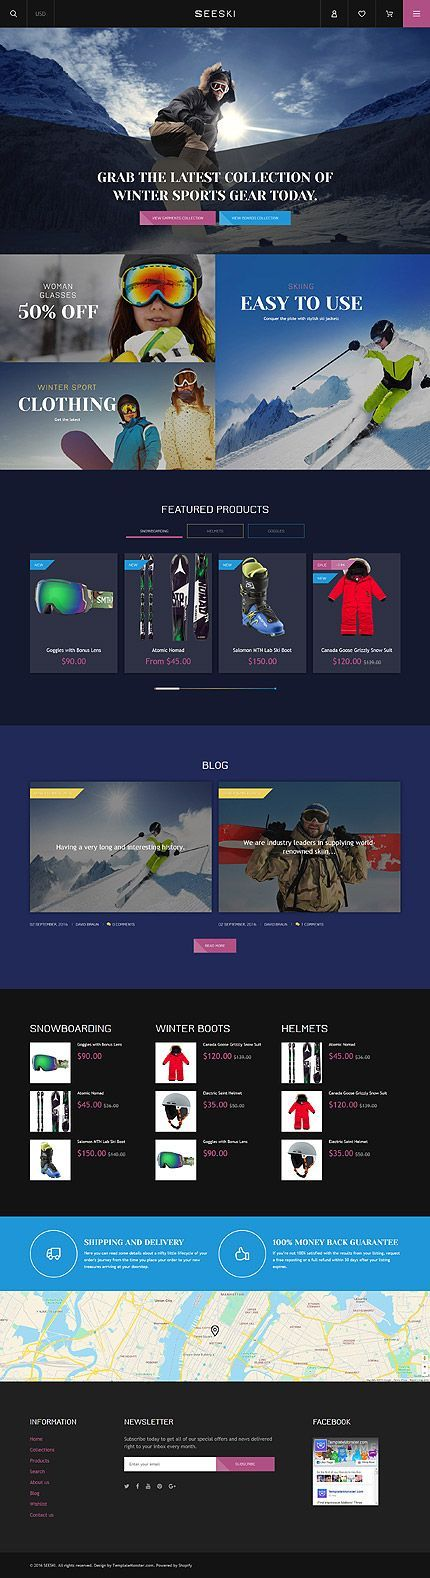 Template 61217 - Seeski Ski Responsive Shopify Theme with Bootstrap, Blog, Video Integration - Love a good success story? Learn how I went from zero to 1 million in sales in 5 months with an e-commerce store.